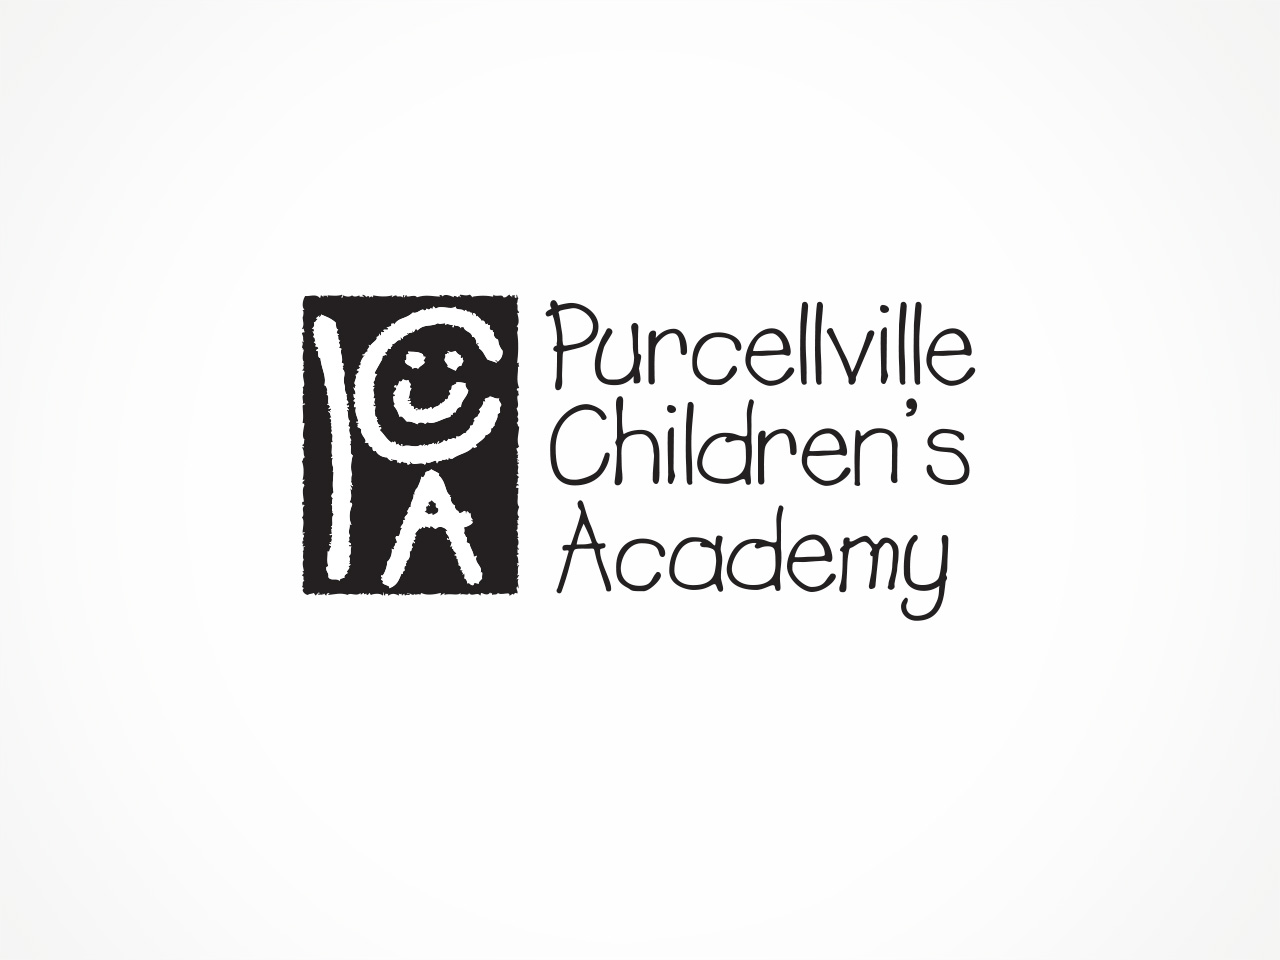 Purcellville Children's Academy logo